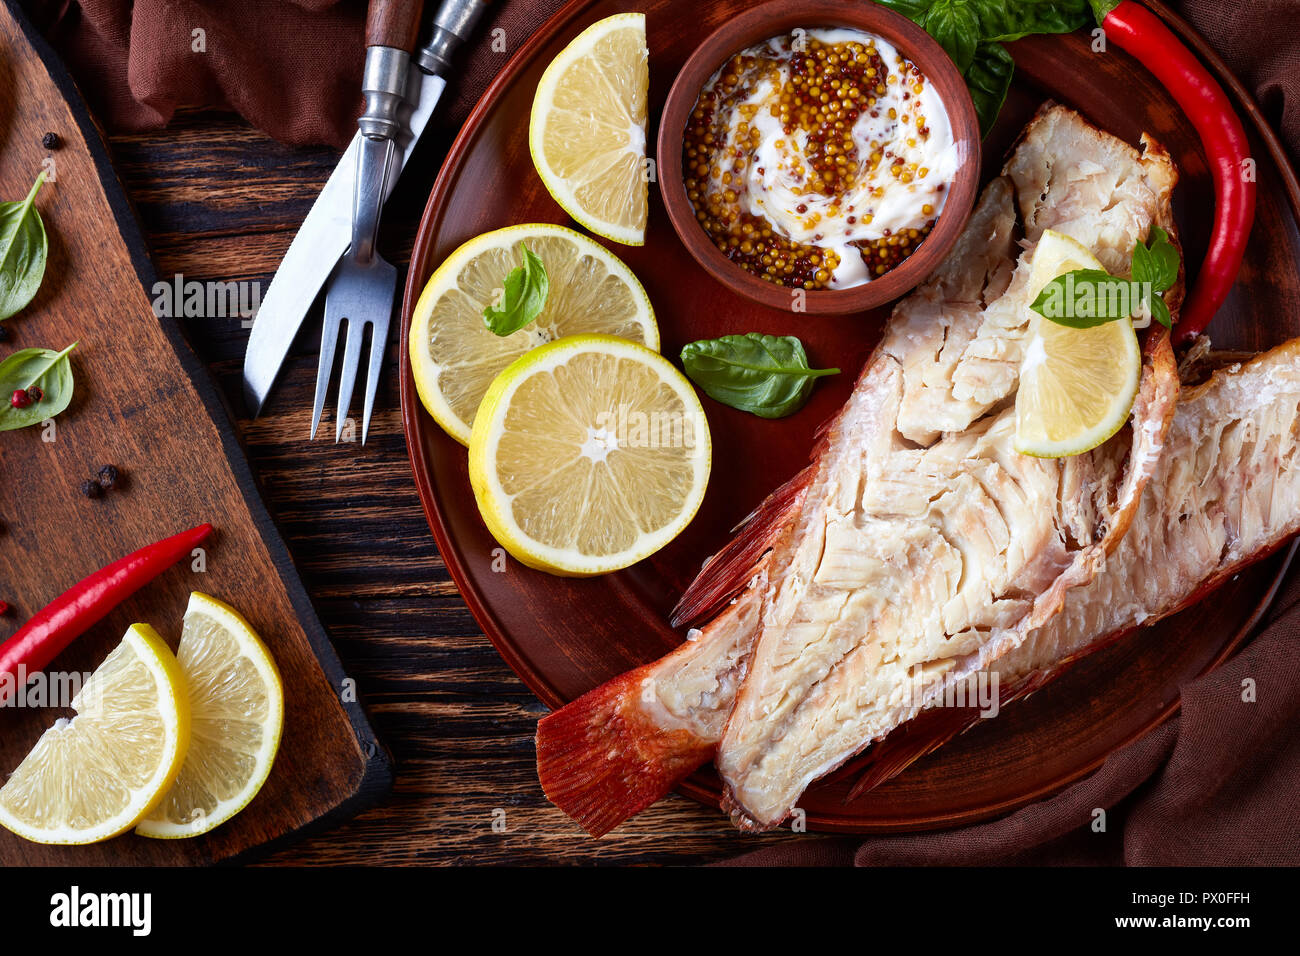 fillet of hot smoked red snapper served on a earthenware plate with fresh basil leaves, lemon slices and mustard sauce, fork and knife on a wooden rus Stock Photo